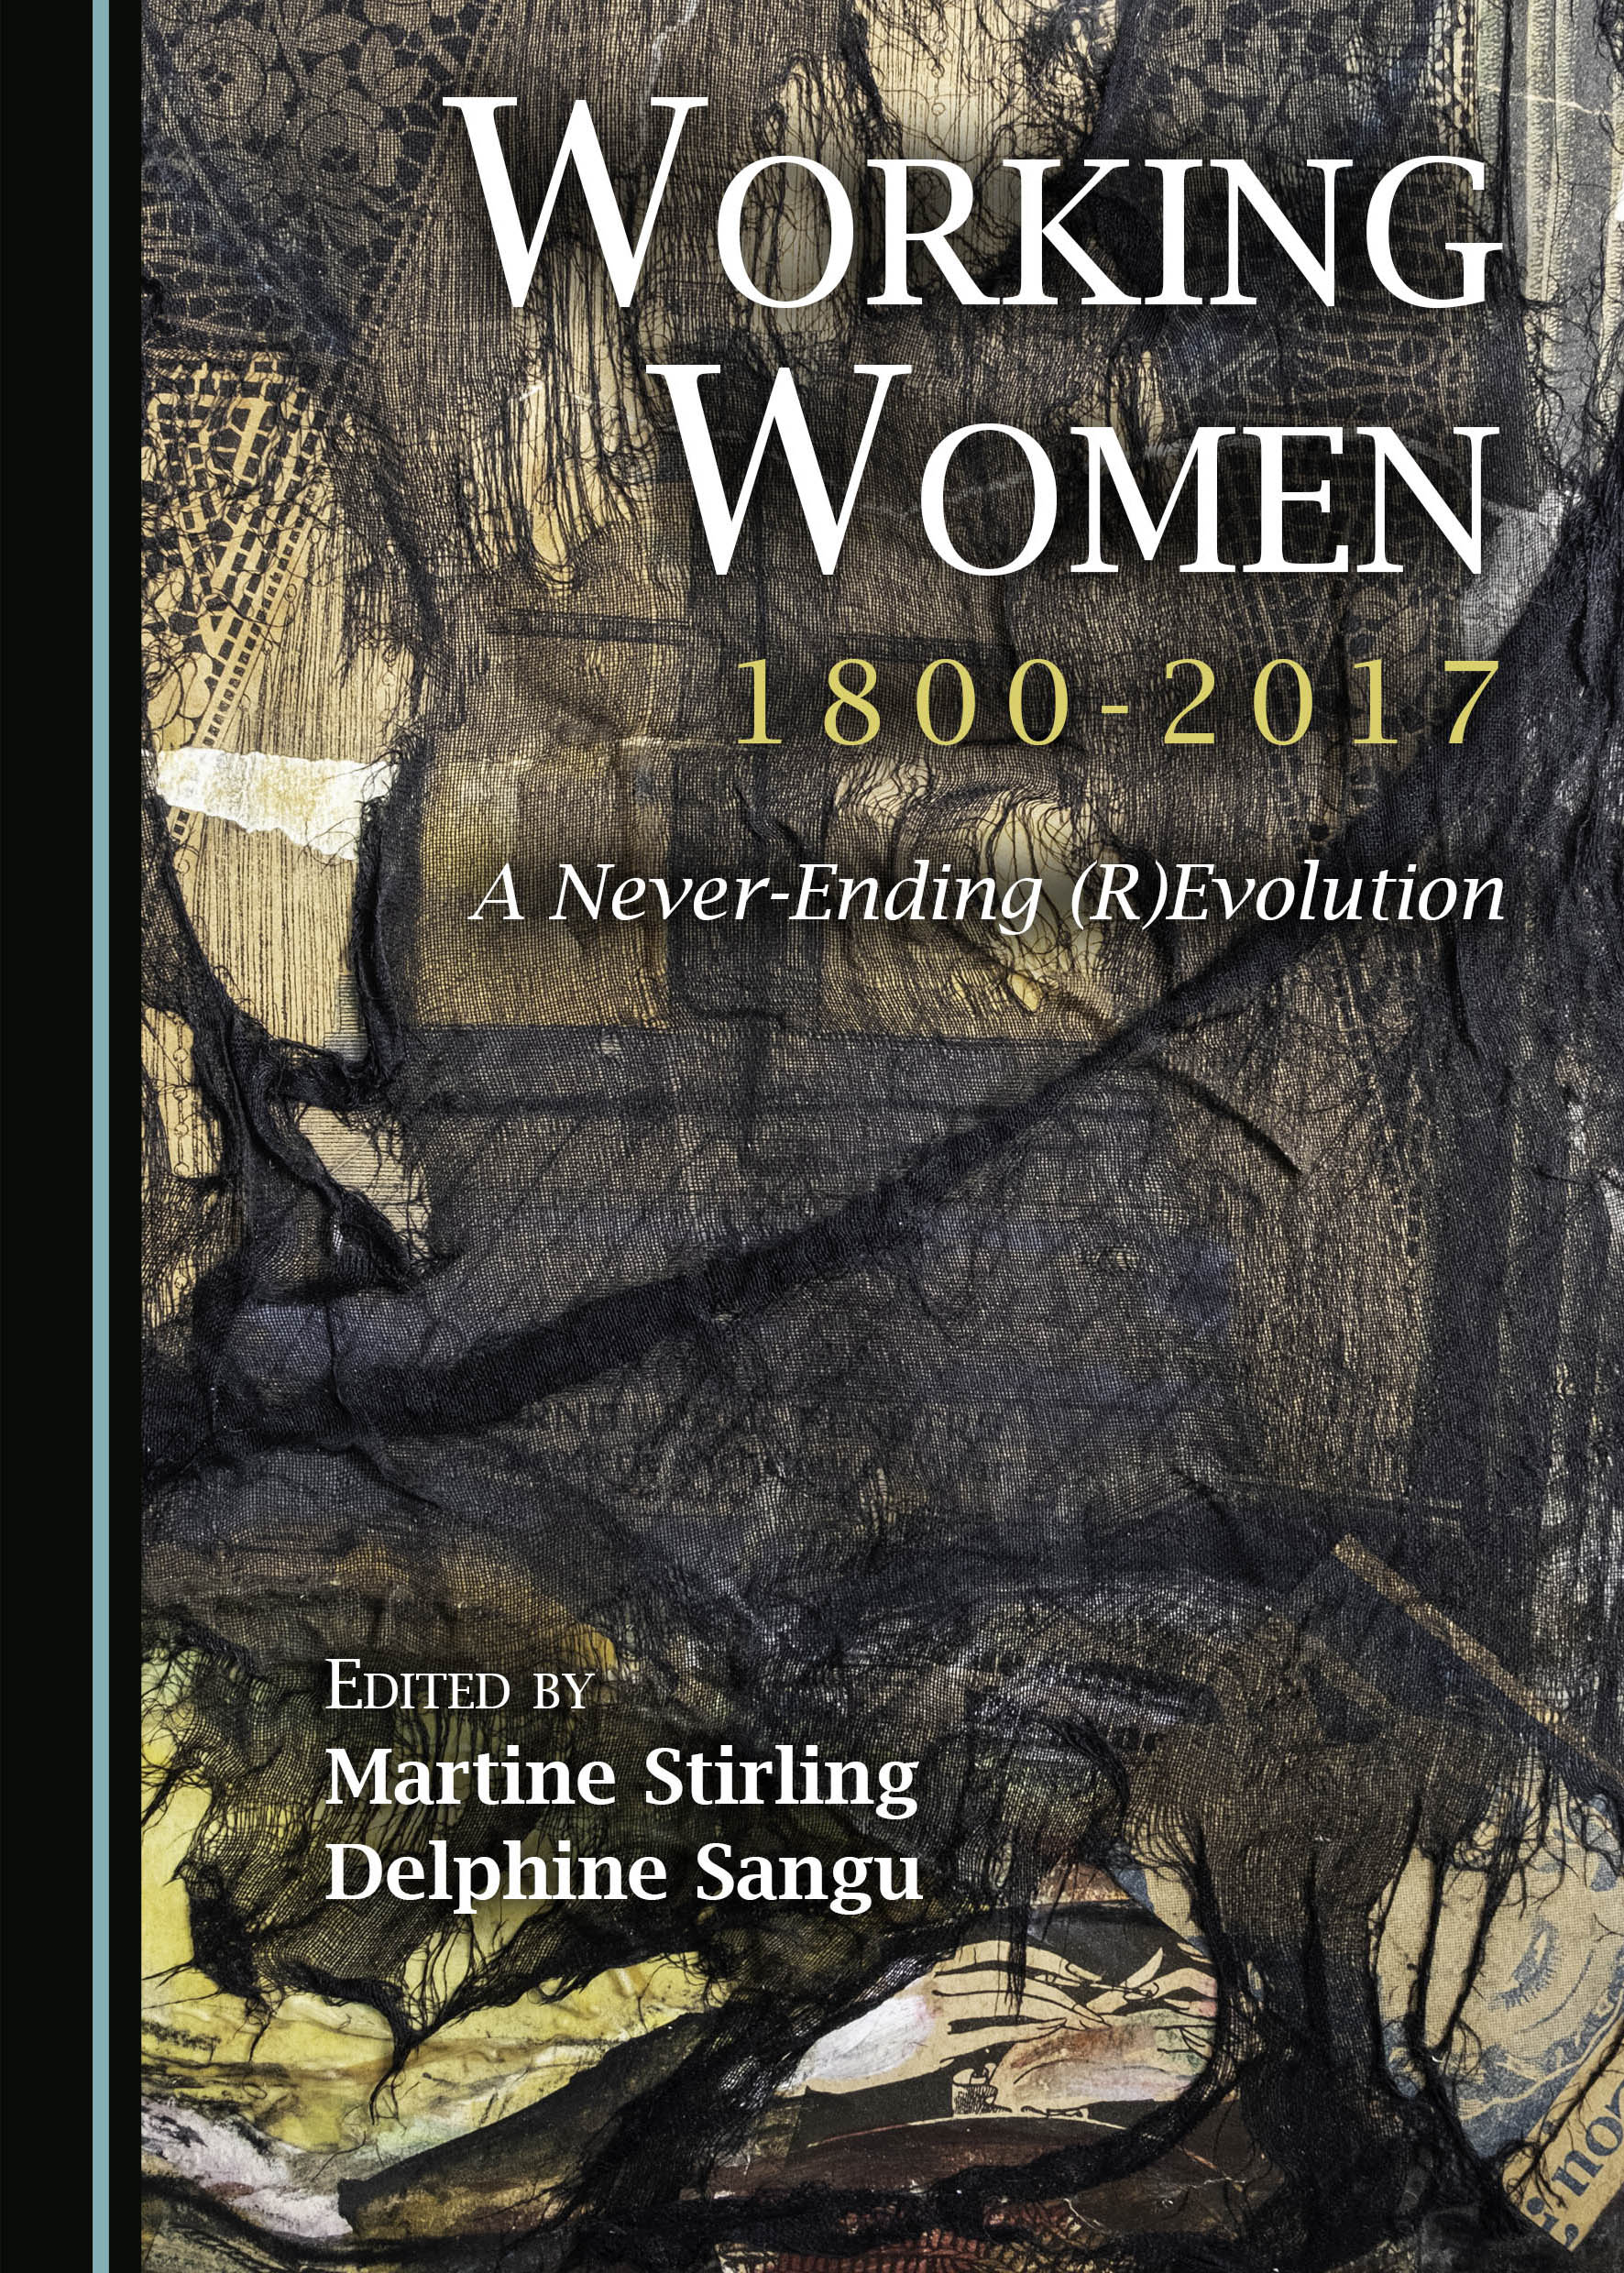 Working Women, 1800-2017: A Never-Ending (R)Evolution